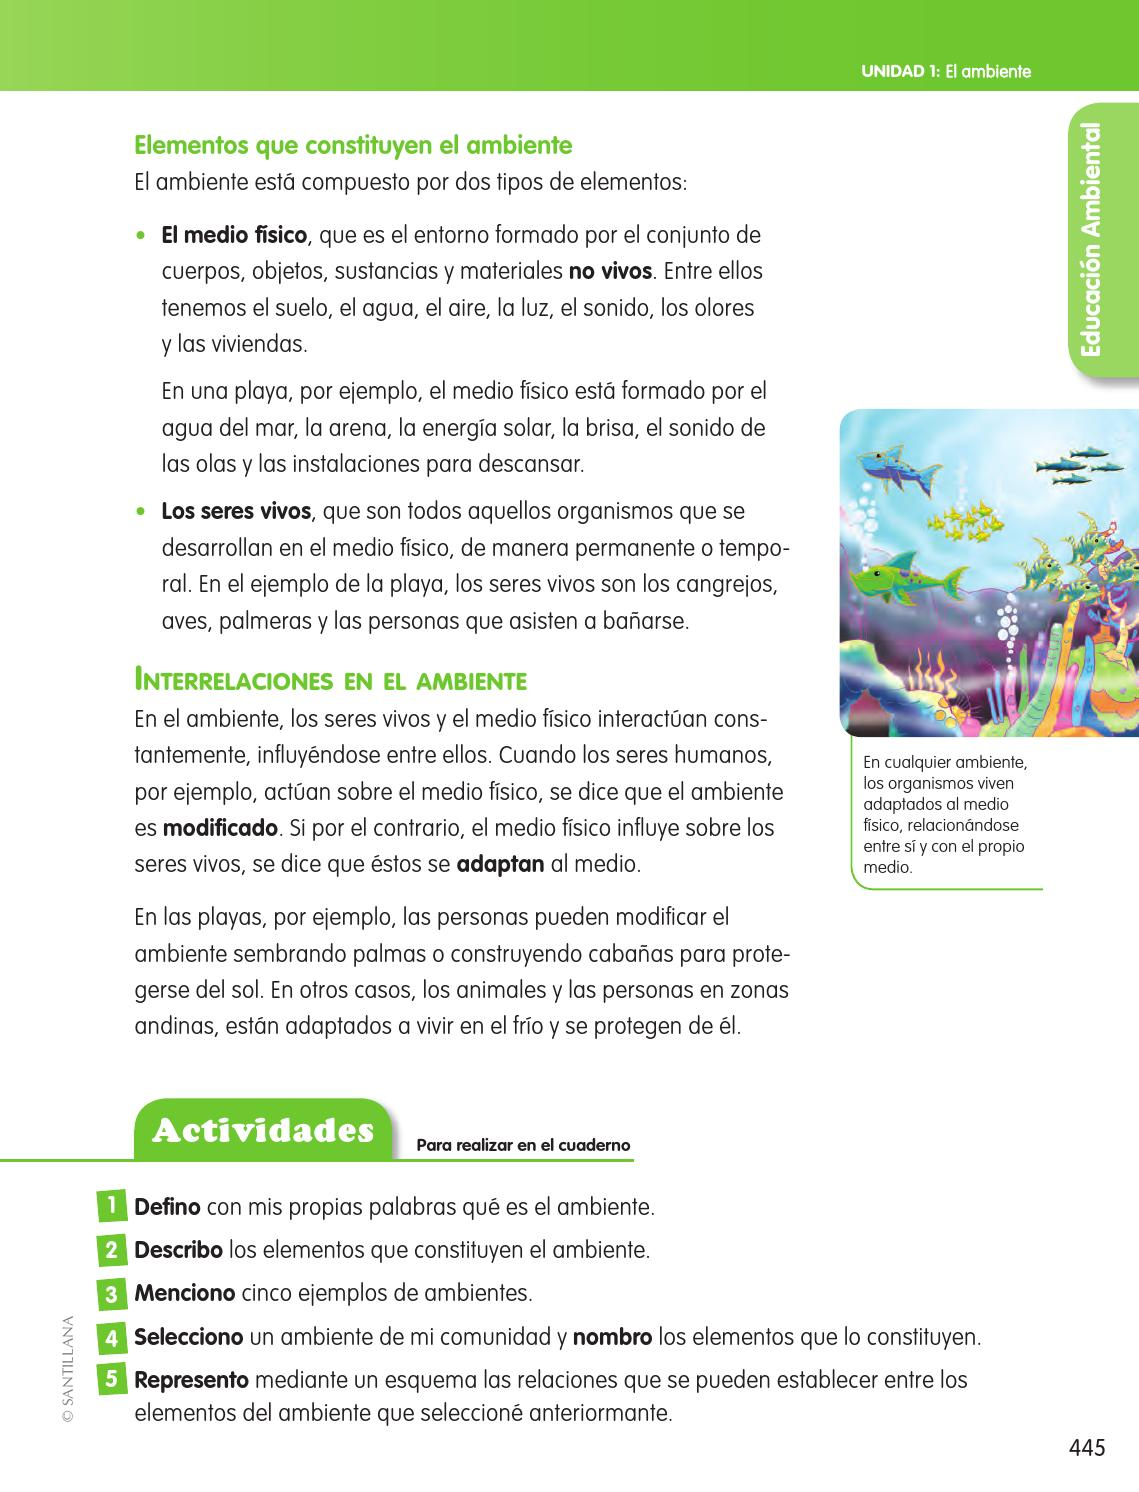 Enciclopedia did ctica 4 by santillana venezuela issuu for Objetos para banarse